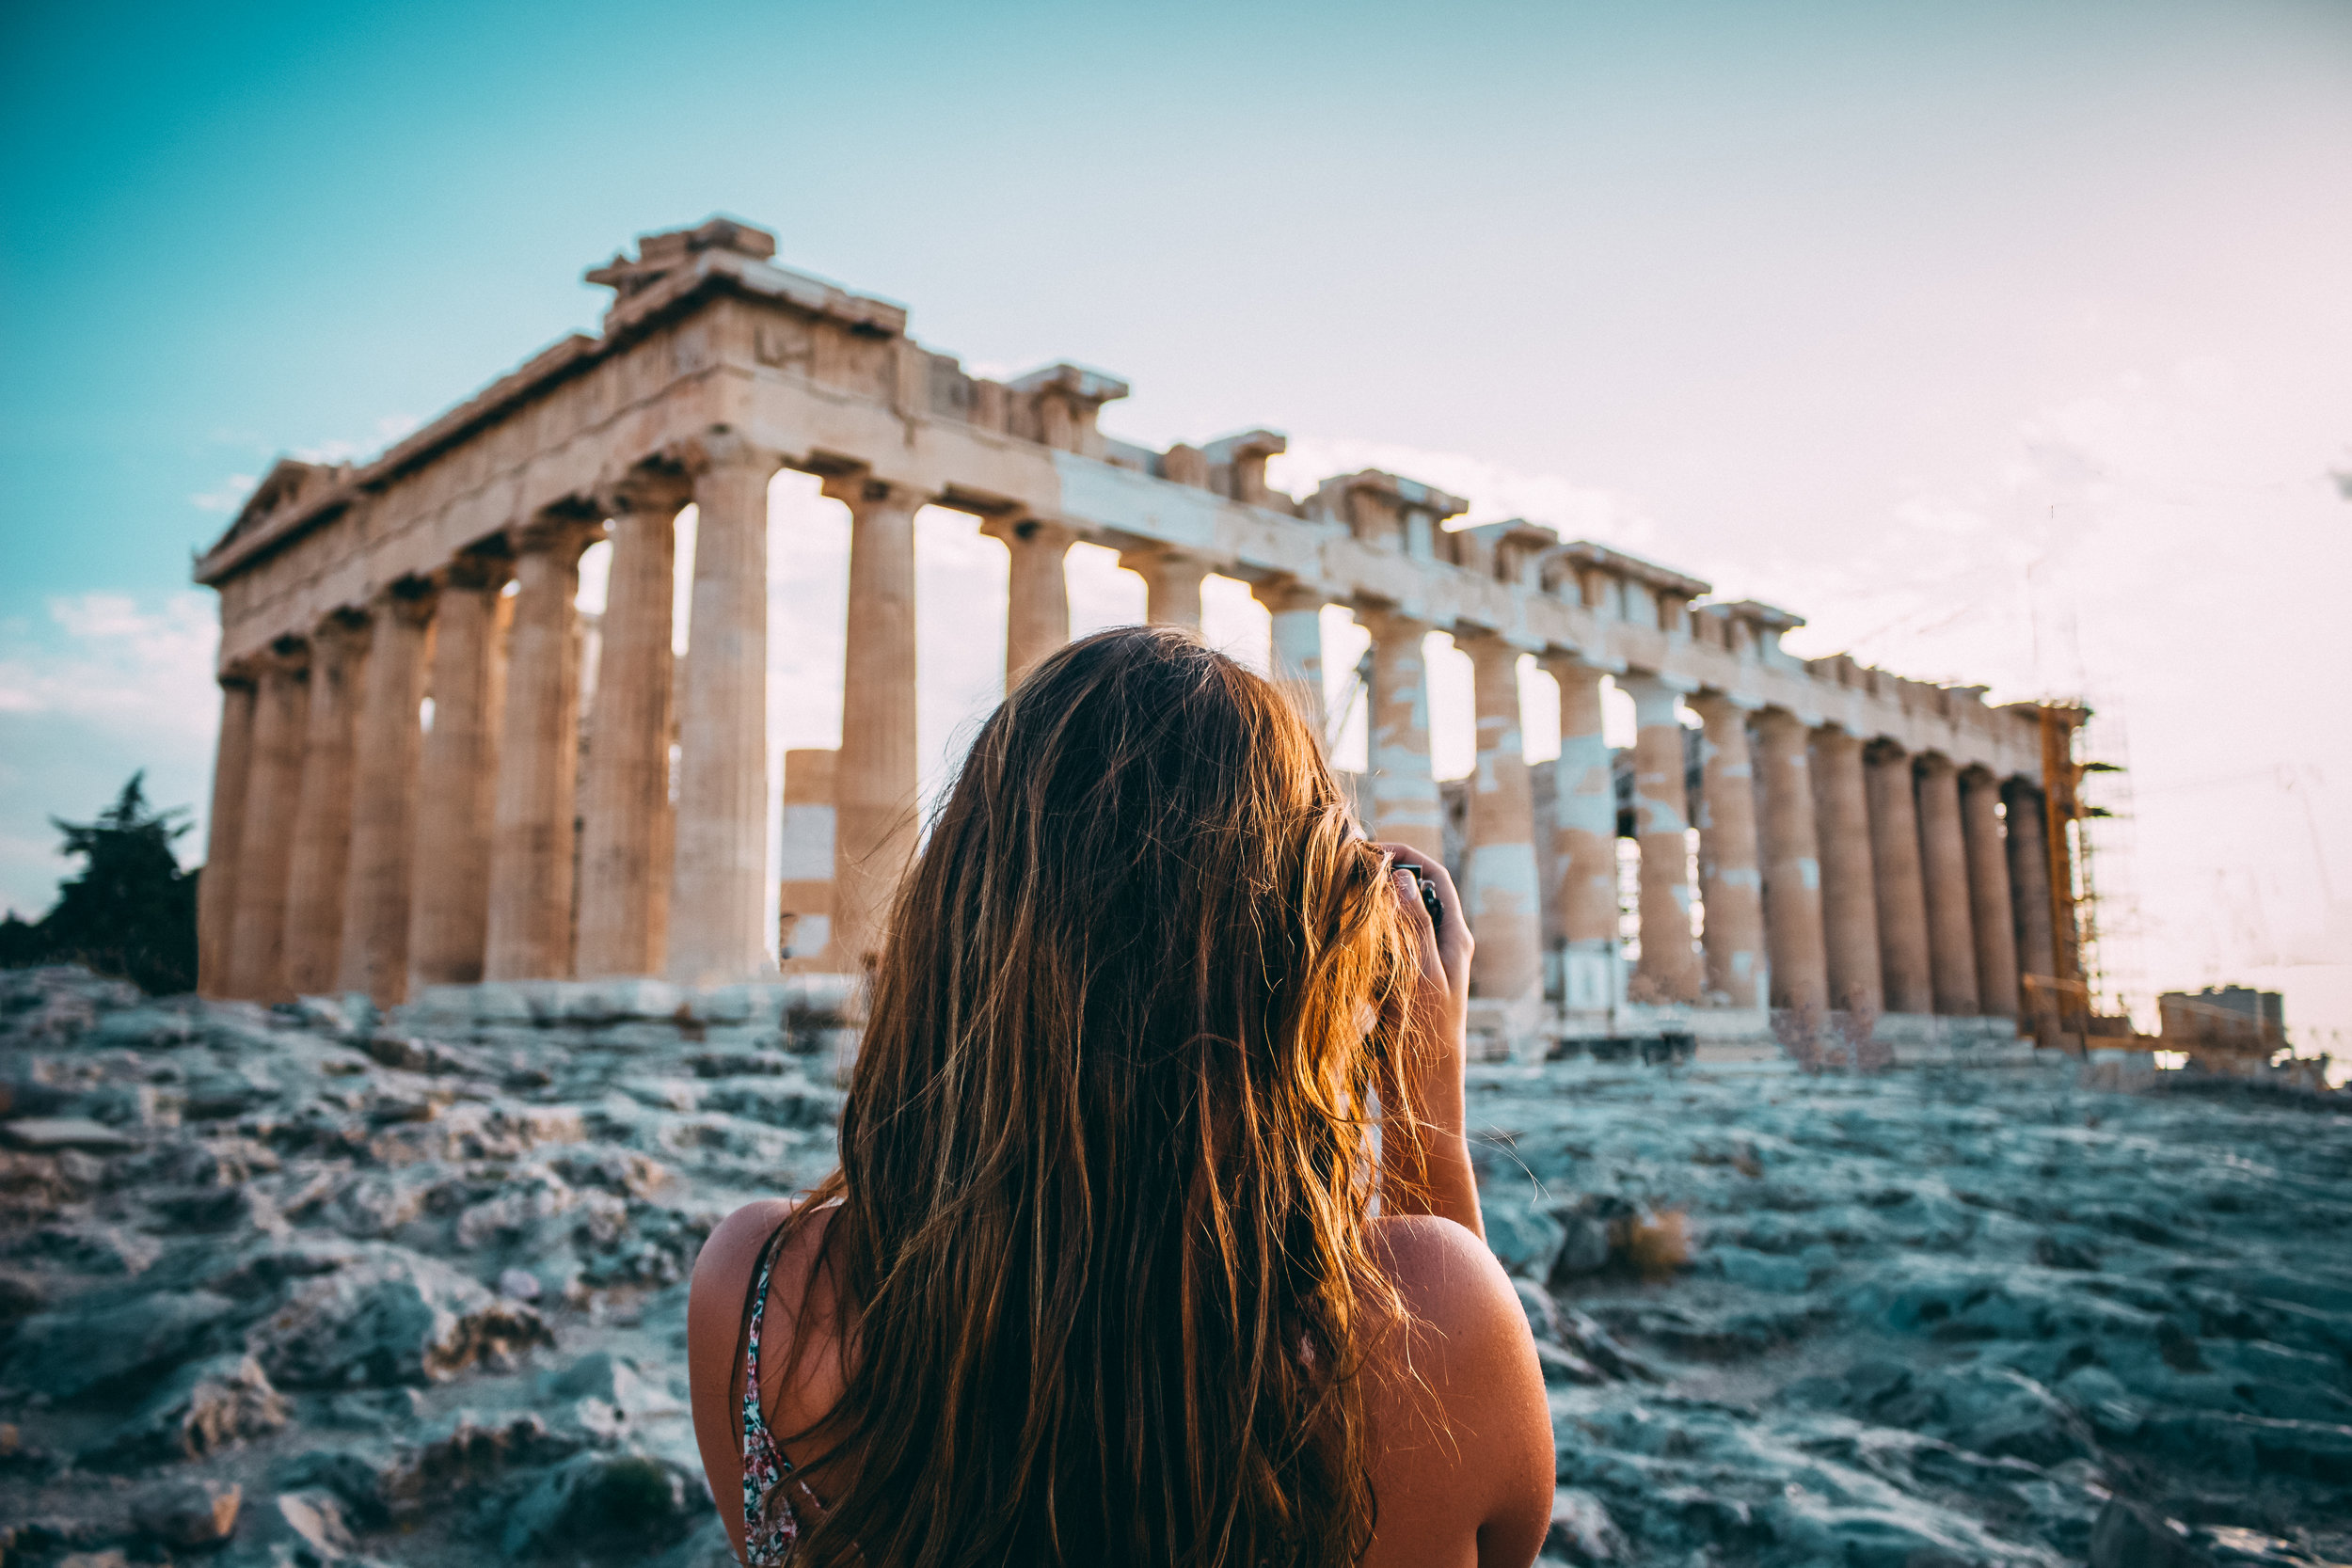 Acropolis of Athens. Photo by Arthur Yeti via Unsplash.